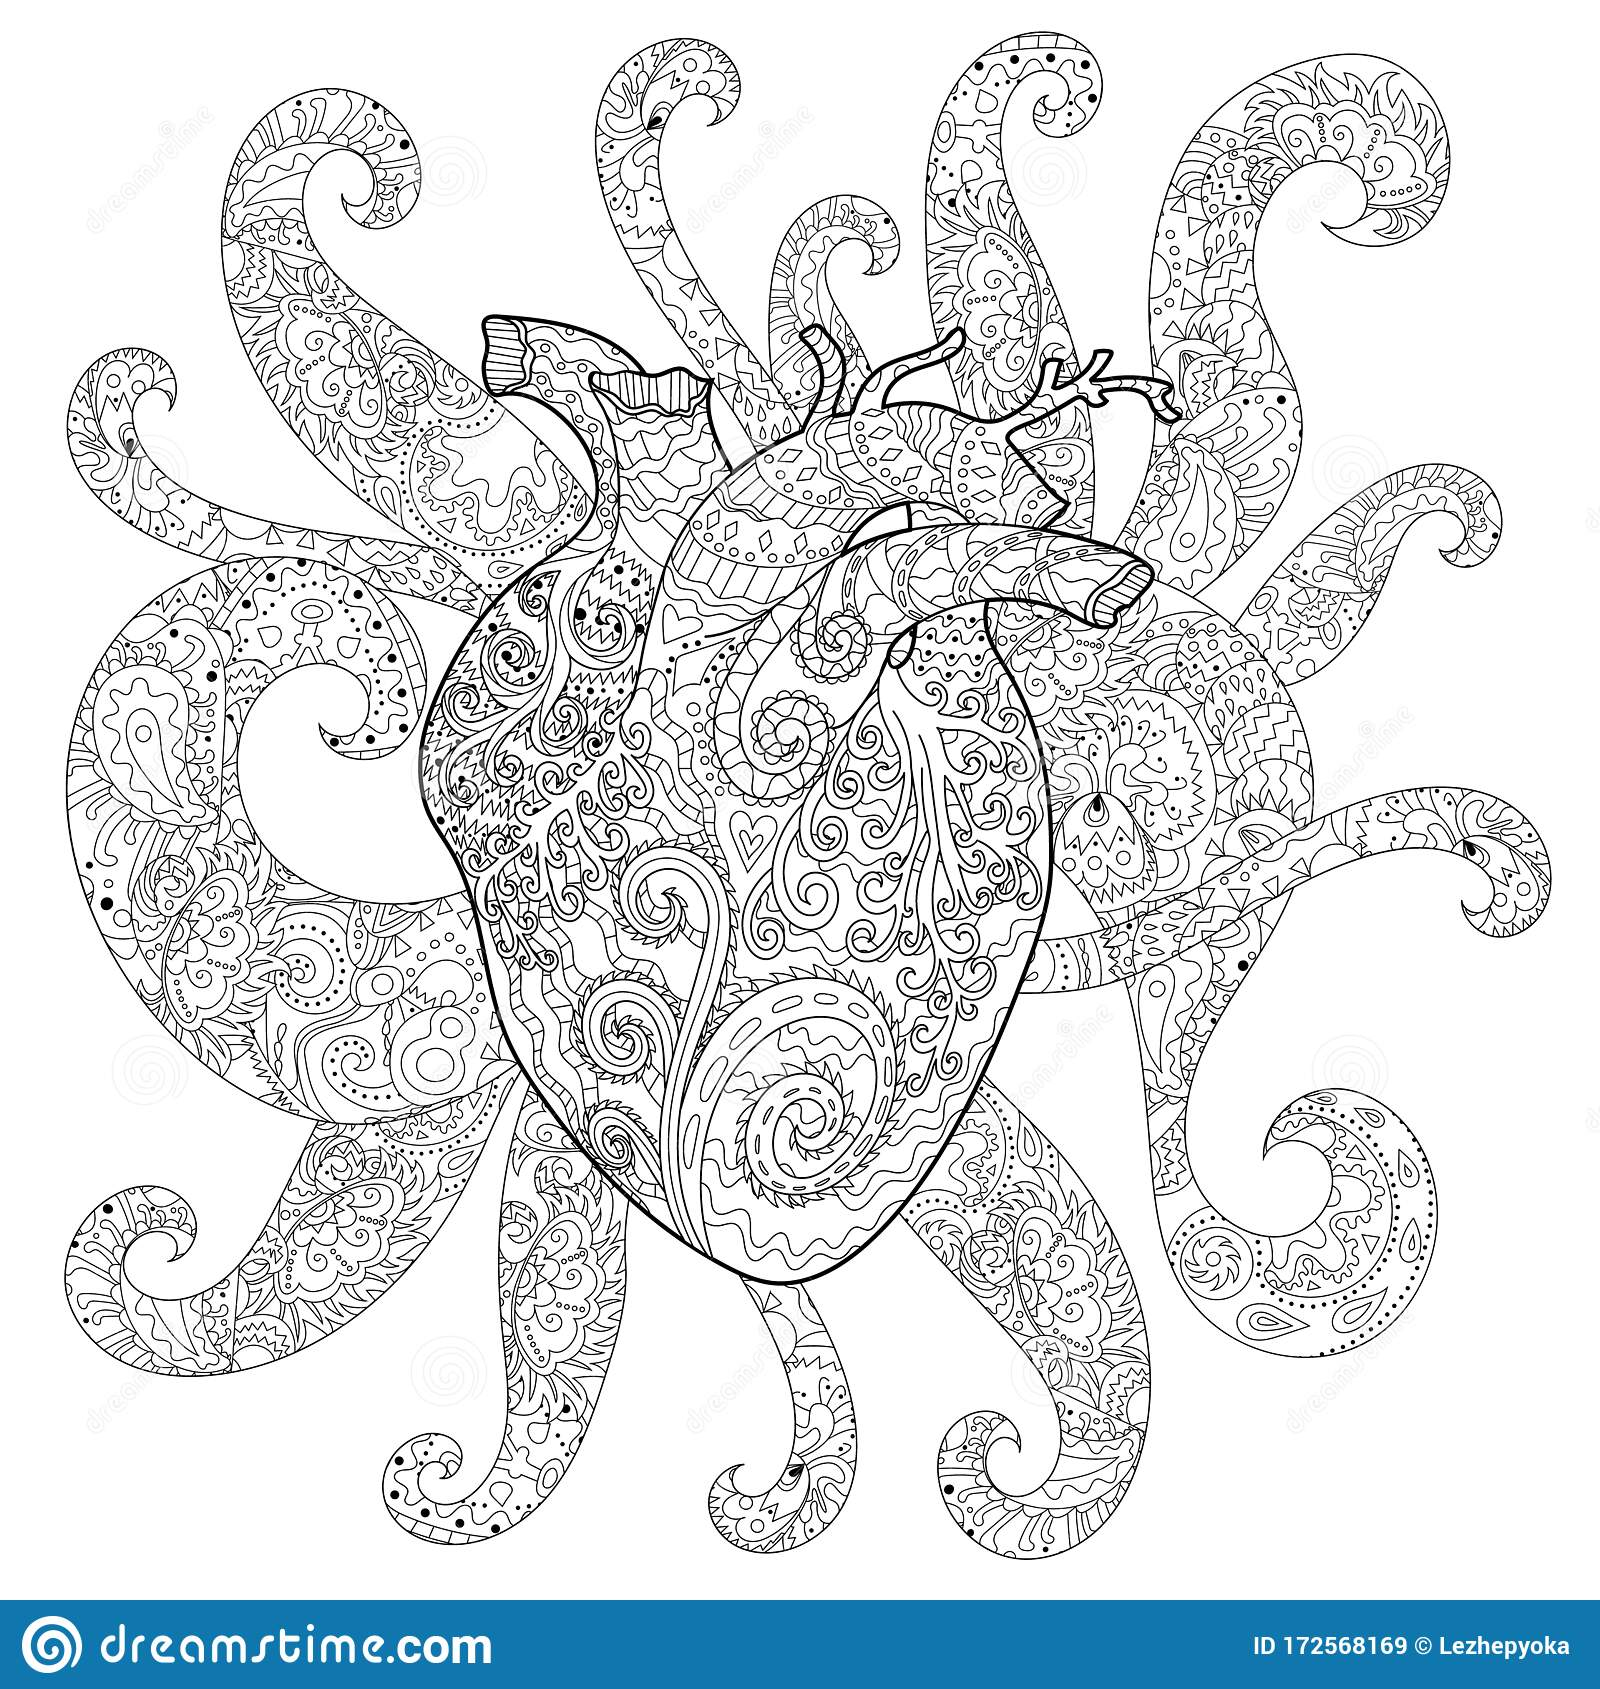 Human Patterned Heart For Coloring Book Stock Illustration Illustration Of Background Fairytale 172568169